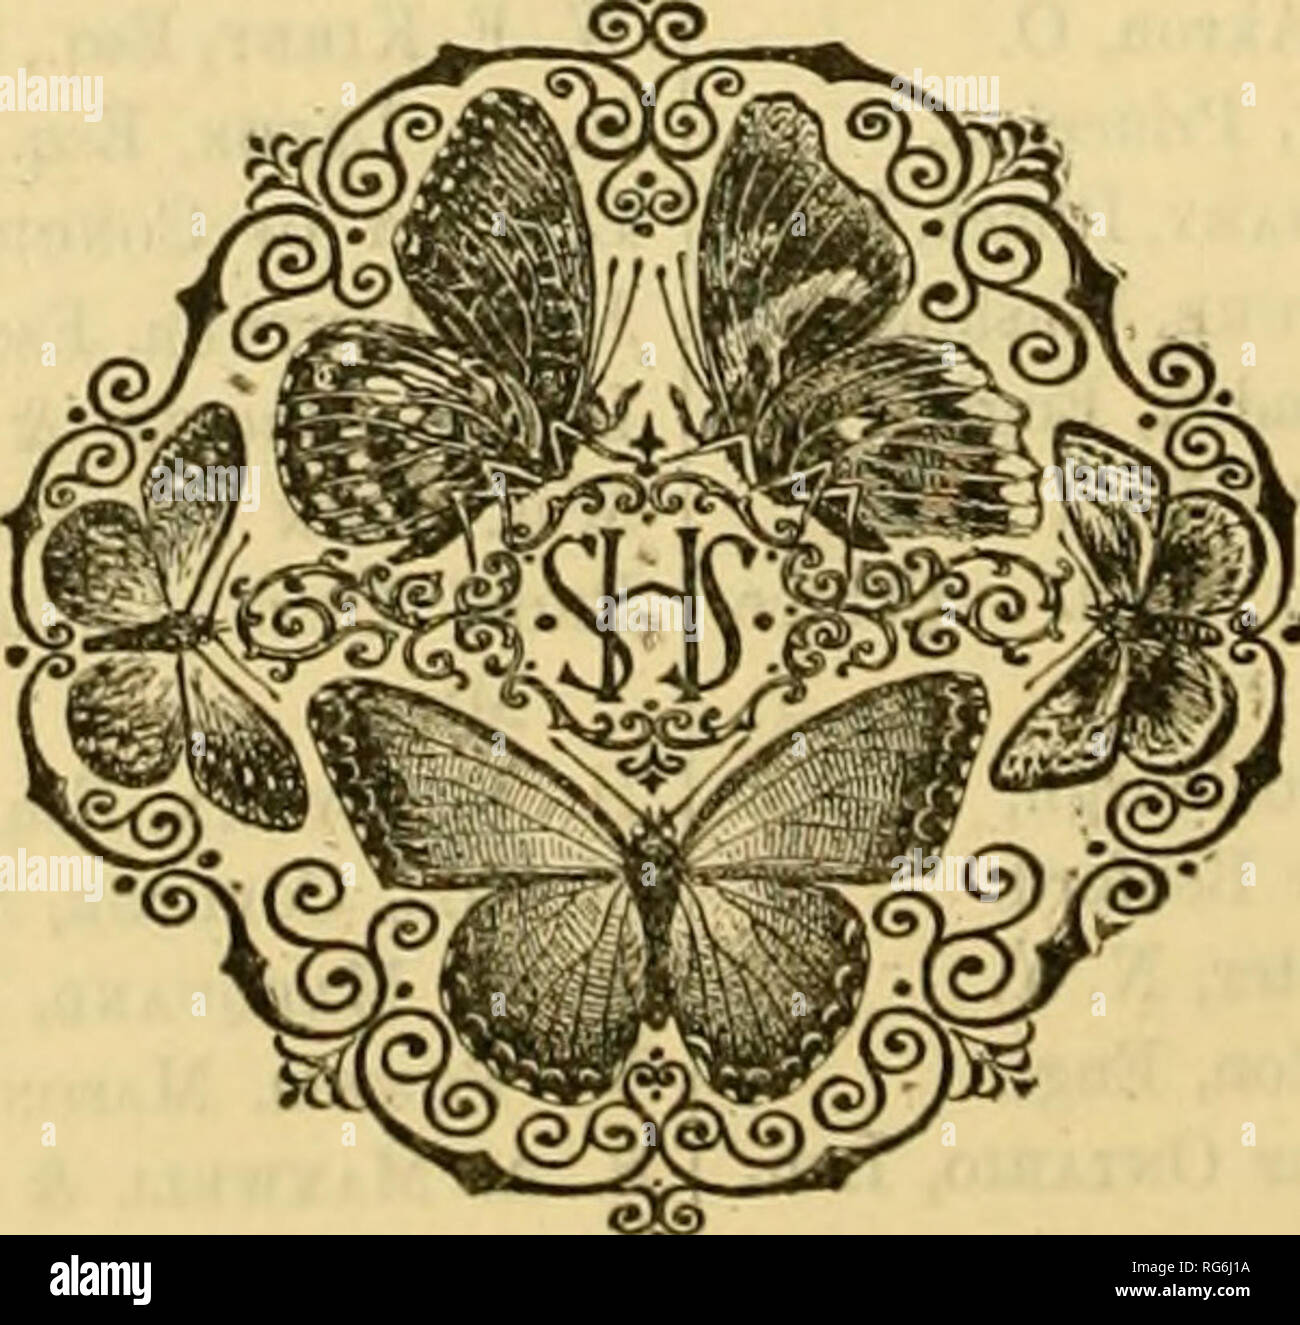 . The butterflies of the eastern United States and Canada : with special reference to New England. Butterflies; Butterflies. 1958 LIST OF SUBSCRIBERS, MAY, 1889. Miss A. L. Mato, Boston. Mercantile Libeaey, New York. Prof. L. C. Miall, Yorkshire College, Leeds, Engl. William Minot, Jr., Esq., Boston. Miss Emily L. Morton, Newburgh, N. Y. New Britain Institute, New Britain, Conn. Lionel de Niceville, Esq., Calcutta. M. Charles Obertiiijr, Keiiues, France. Alfred Pell, Esq., Highland Falls, N. Y. Mr. R. H. Porter, London, Engl. (Three copies.) Providence Athen^um, Providence, R. I. Public Librar - Stock Image